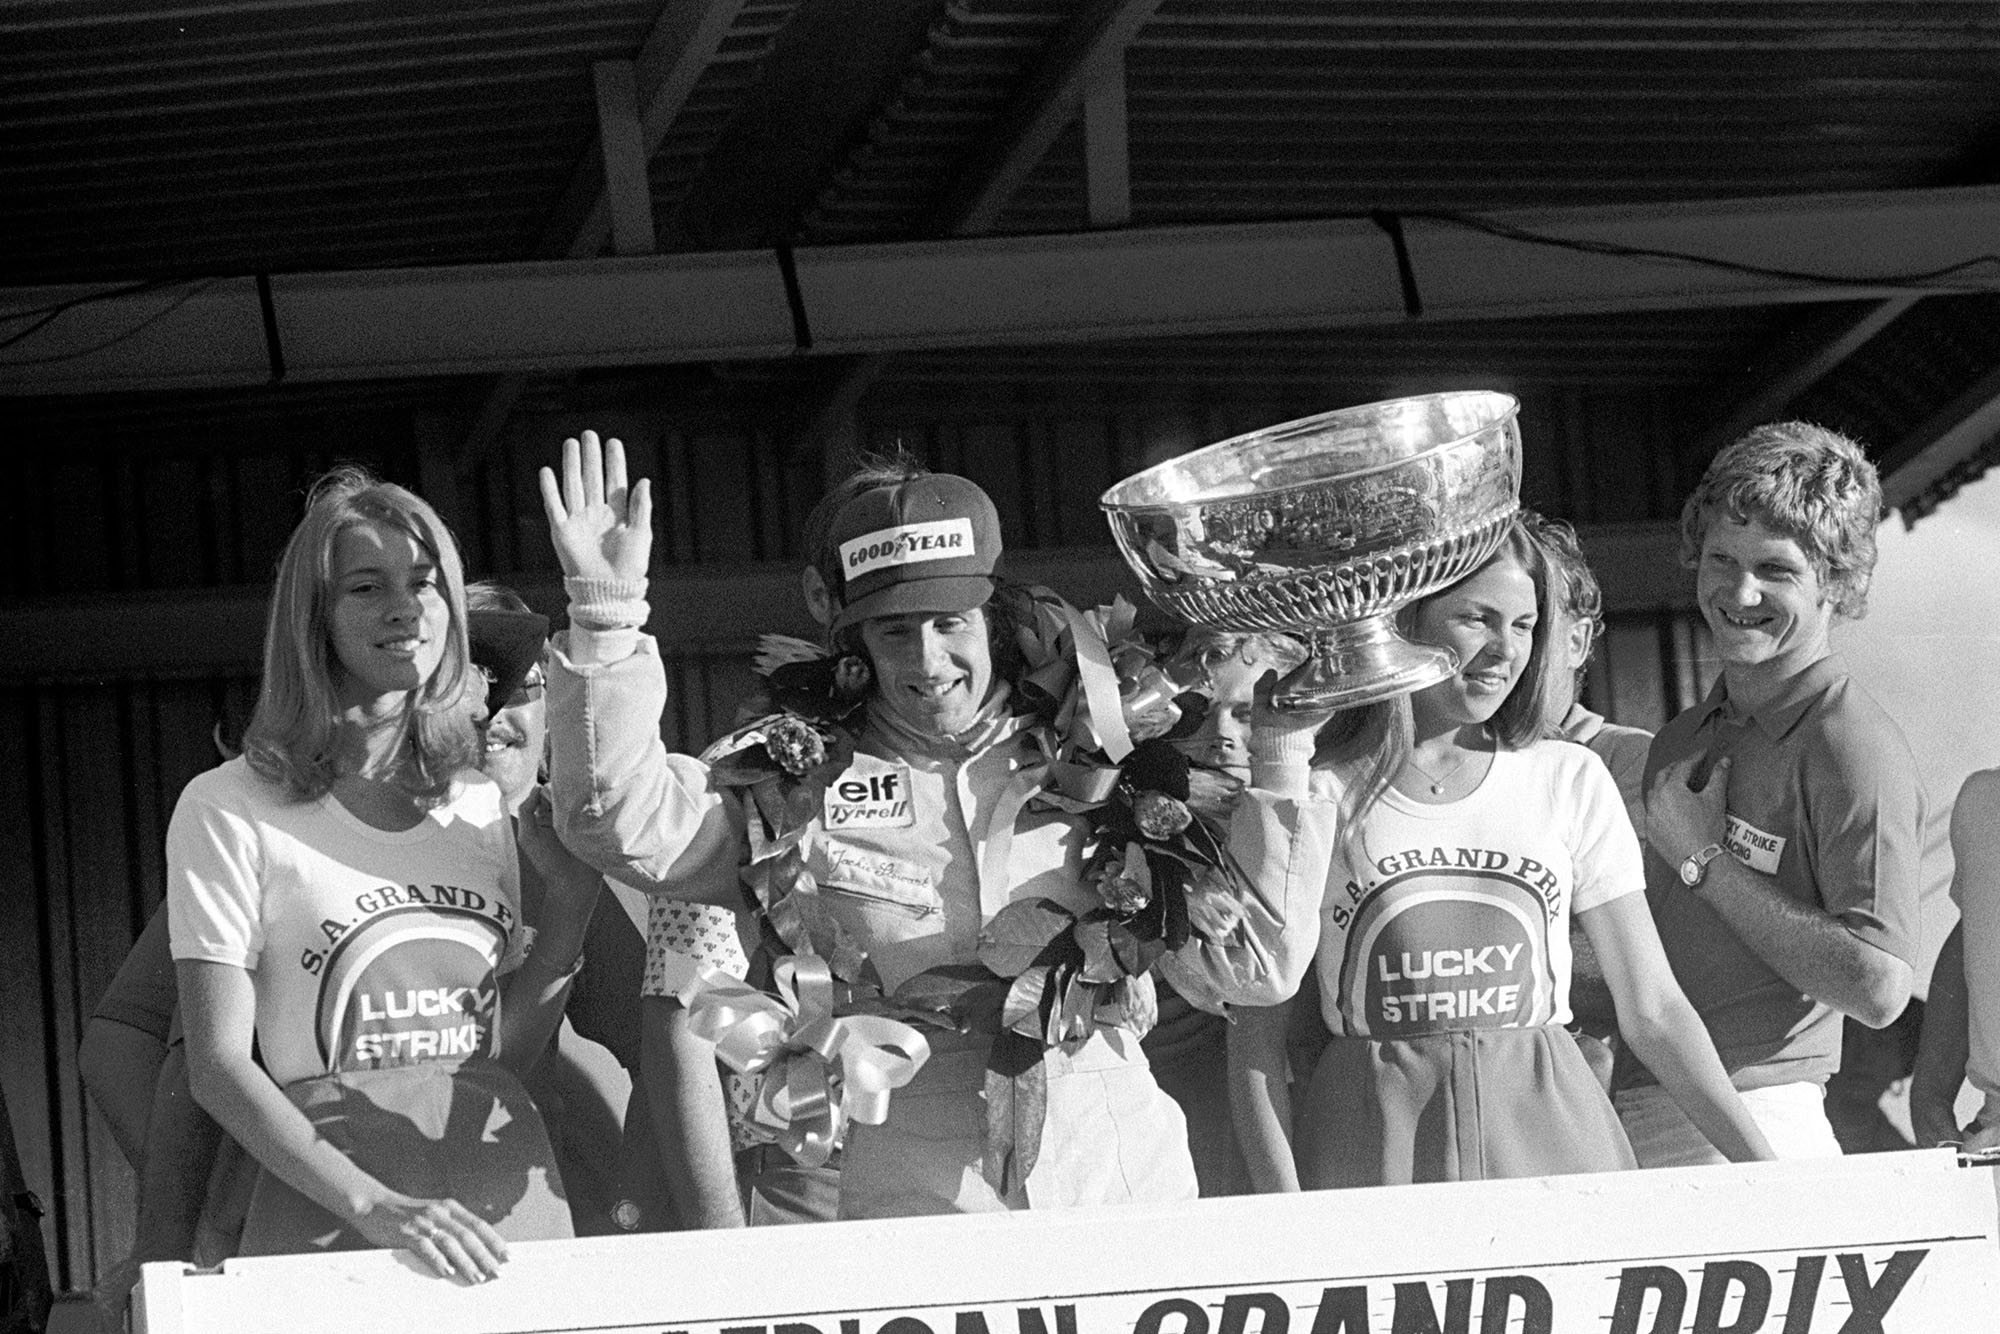 Jackie Stewart waves to the crowd from the podium after winning the 1973 South African Grand Prix for Tyrrell.